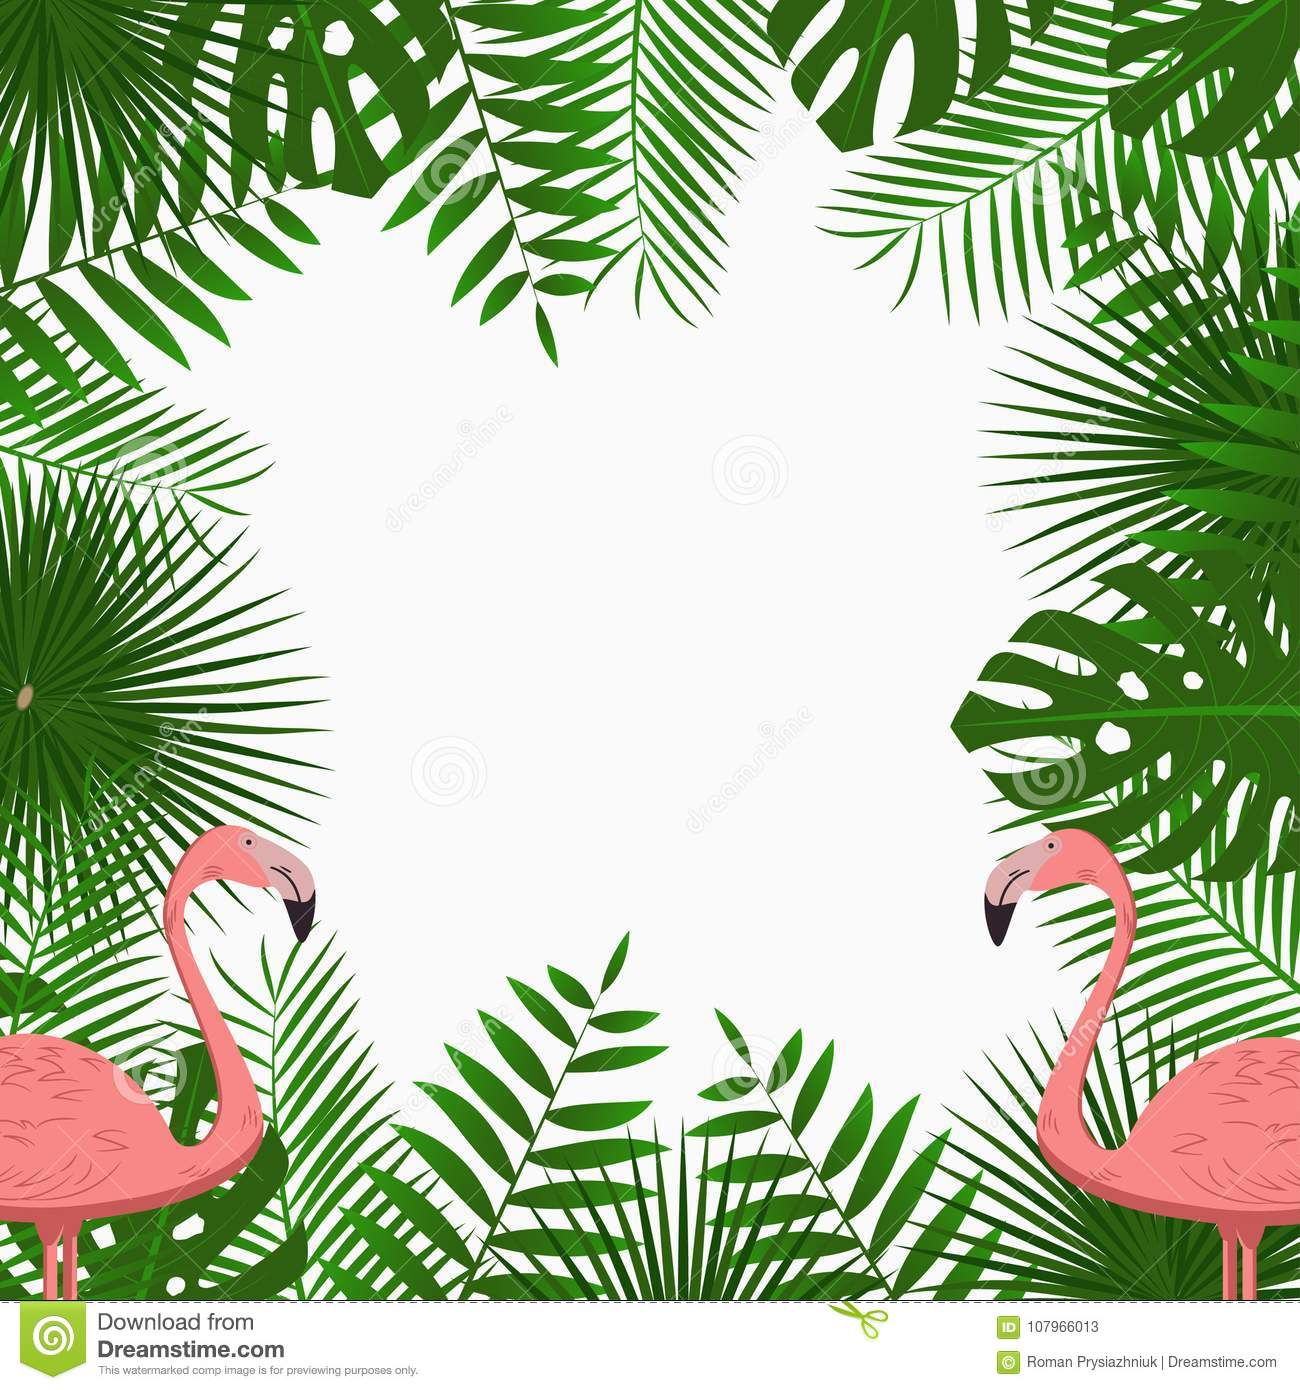 Tropical card poster or banner template with jungle palm tree royalty free stock photo toneelgroepblik Images